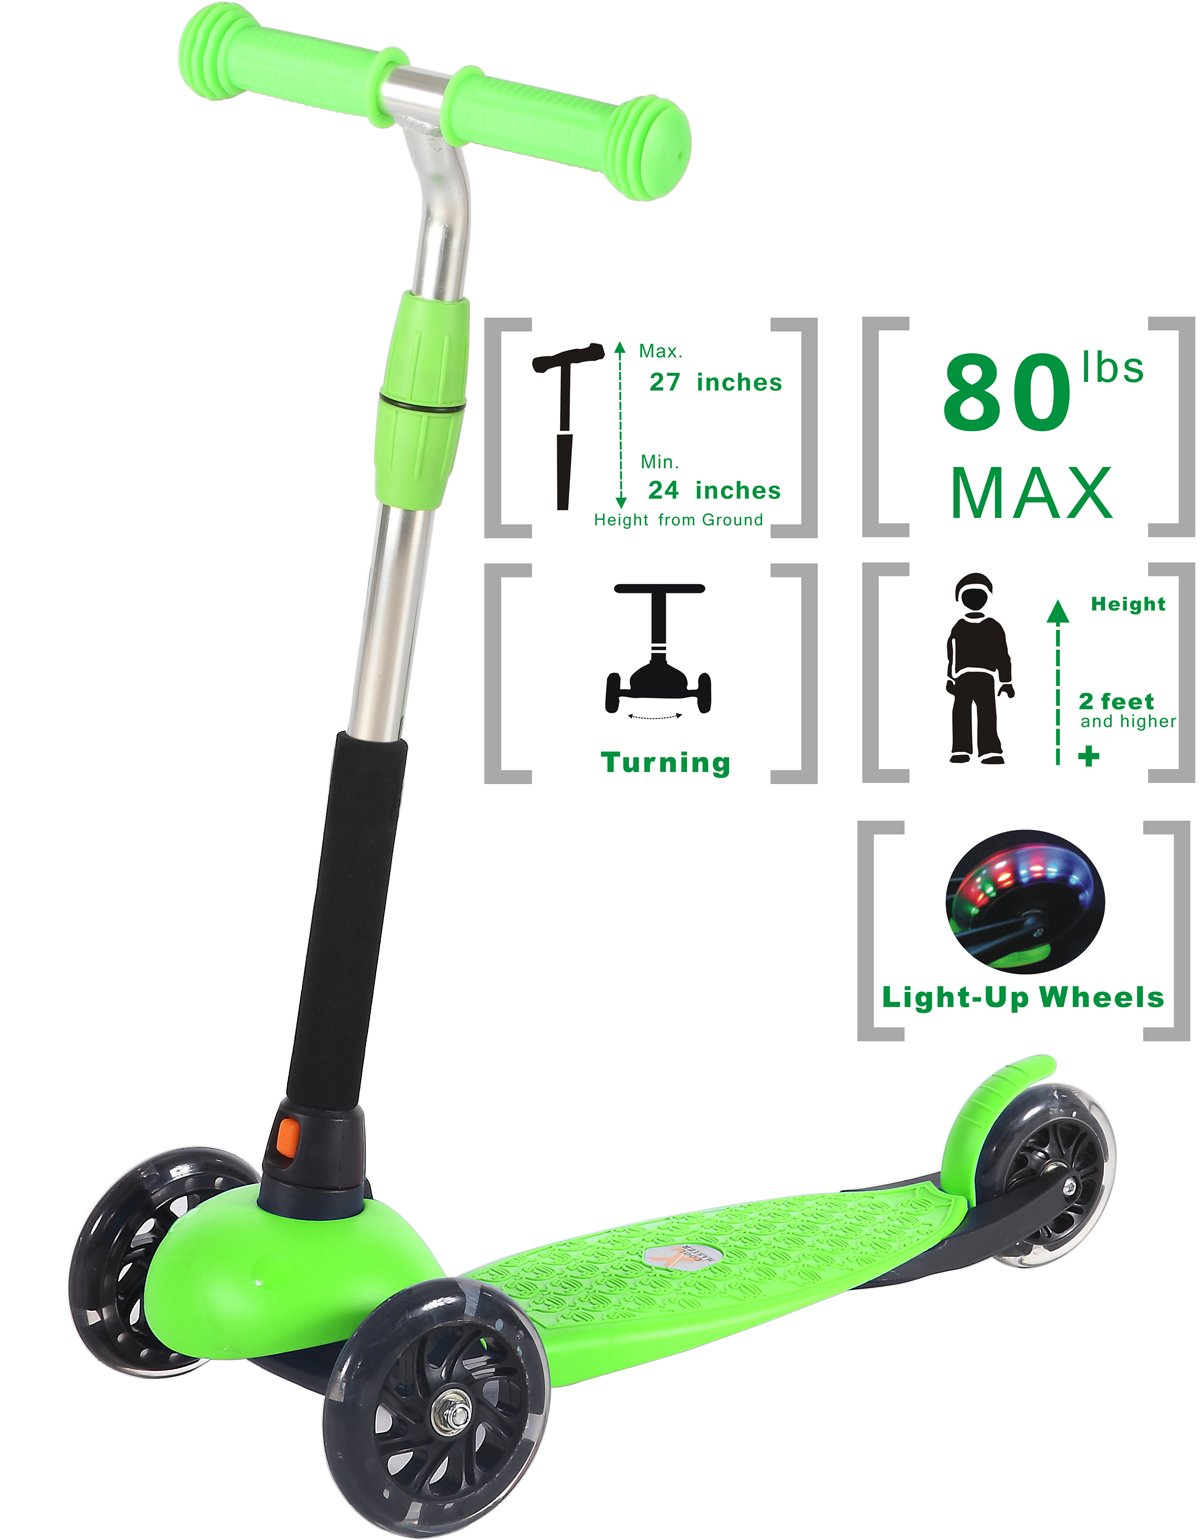 Voyage Sports Kick Scooter for Kids Ages 2- 6 , Kids Scooter , 3 Wheel Scooter for Boys and Girls , Adjustable Height T-bar Handle (Green)